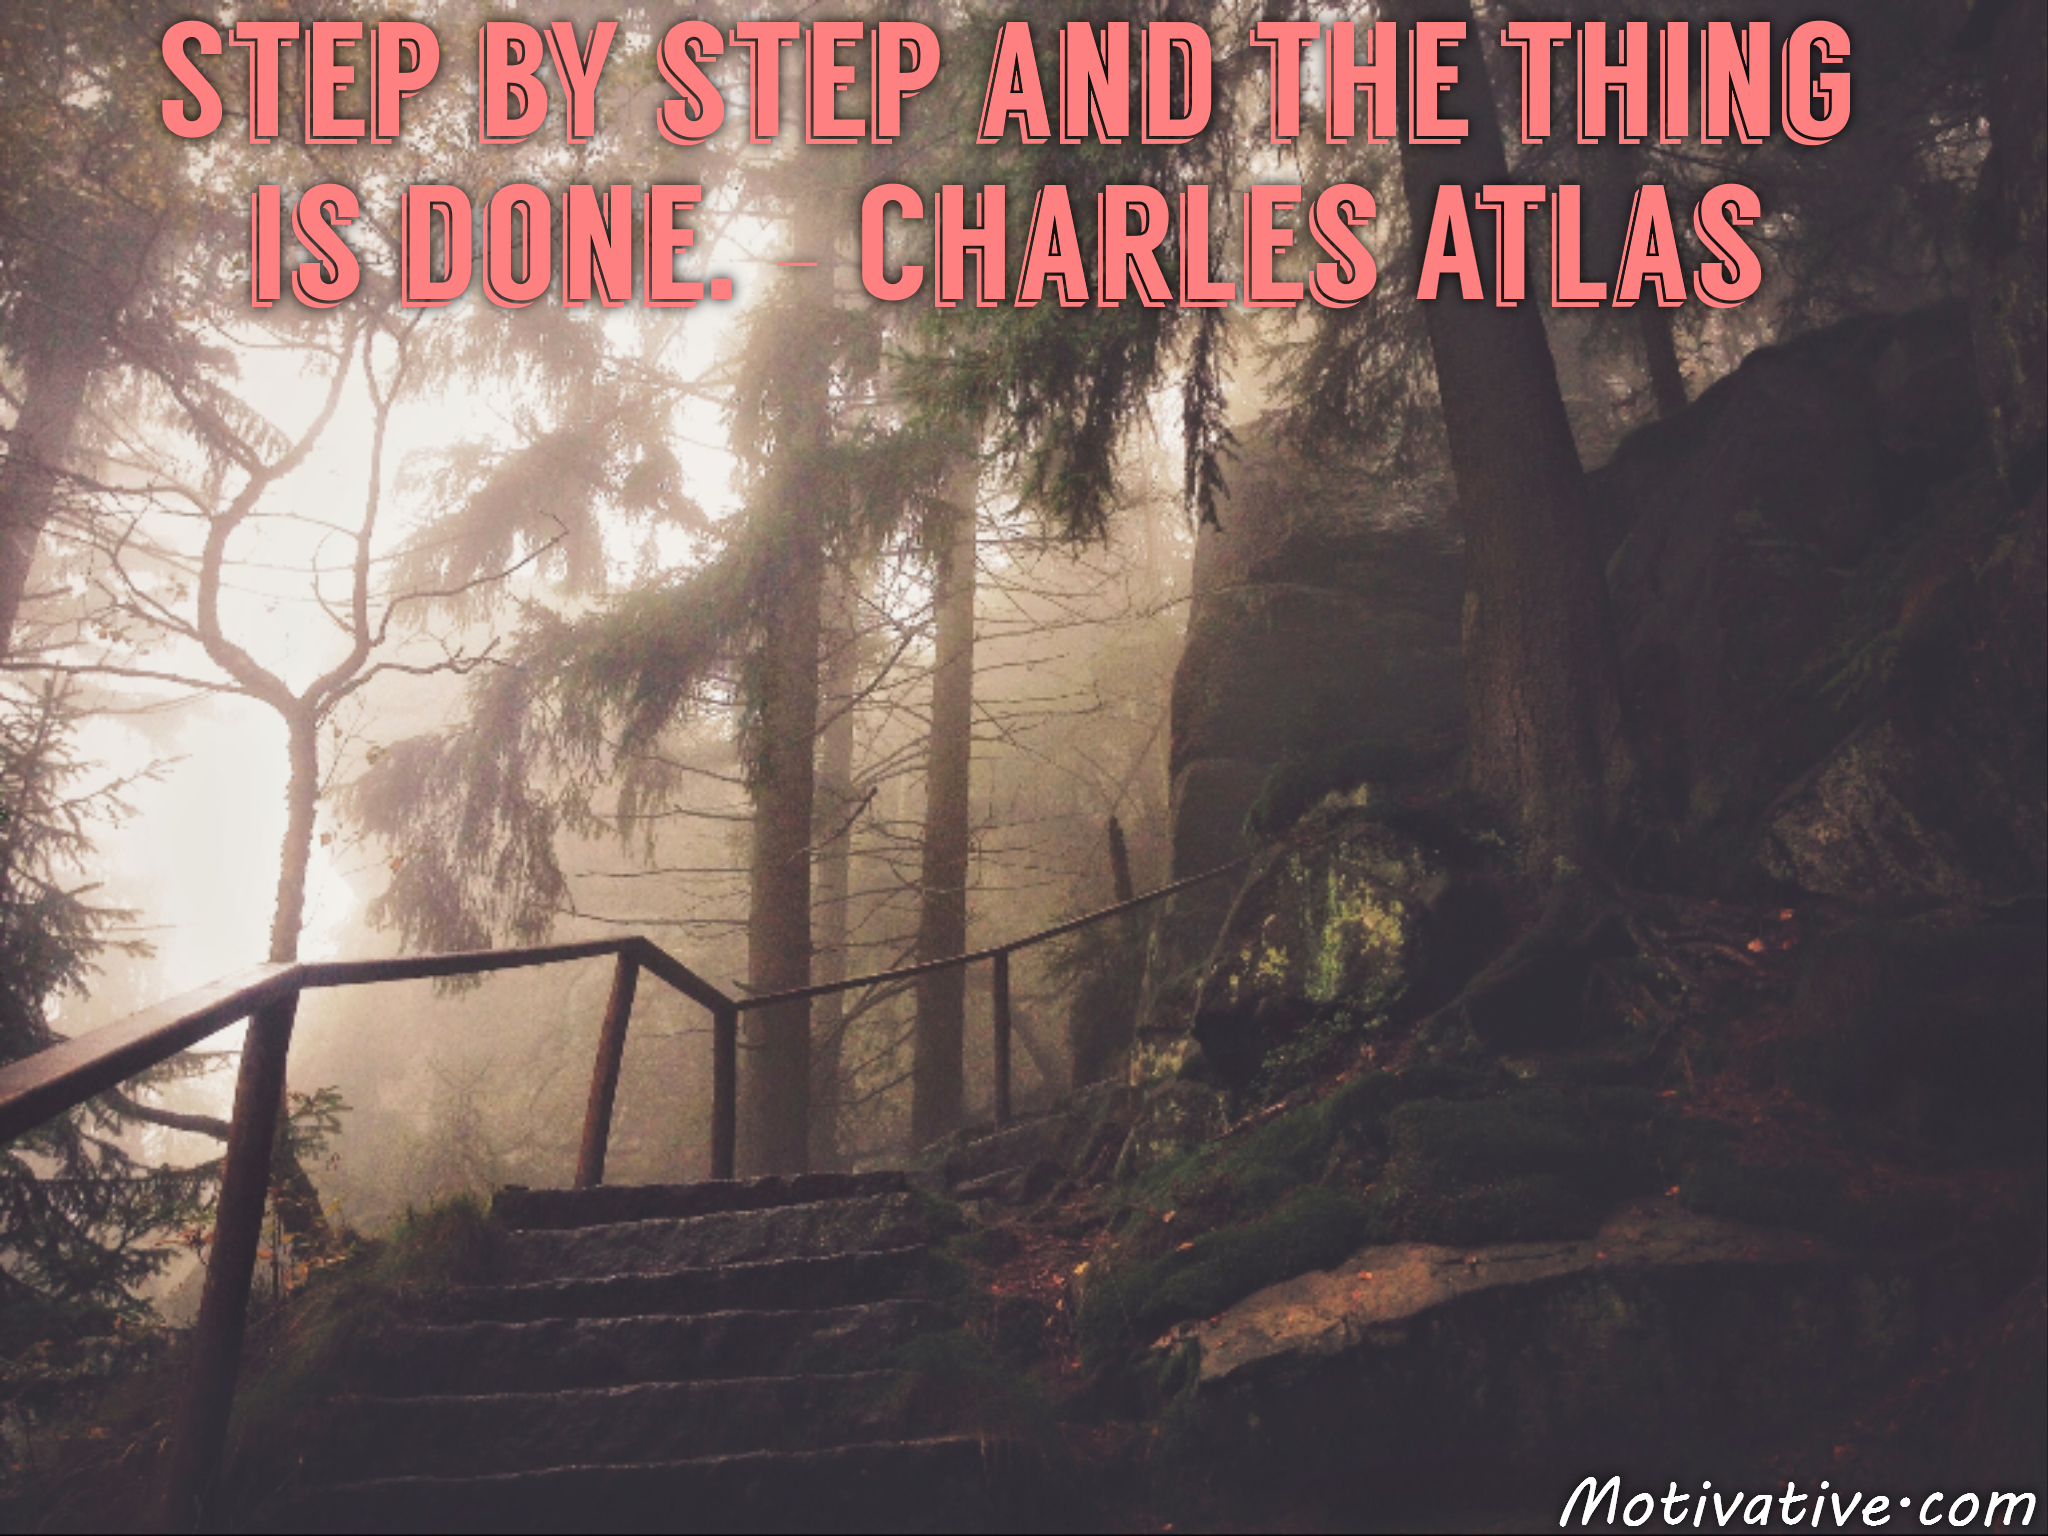 Step by step and the thing is done. – Charles Atlas